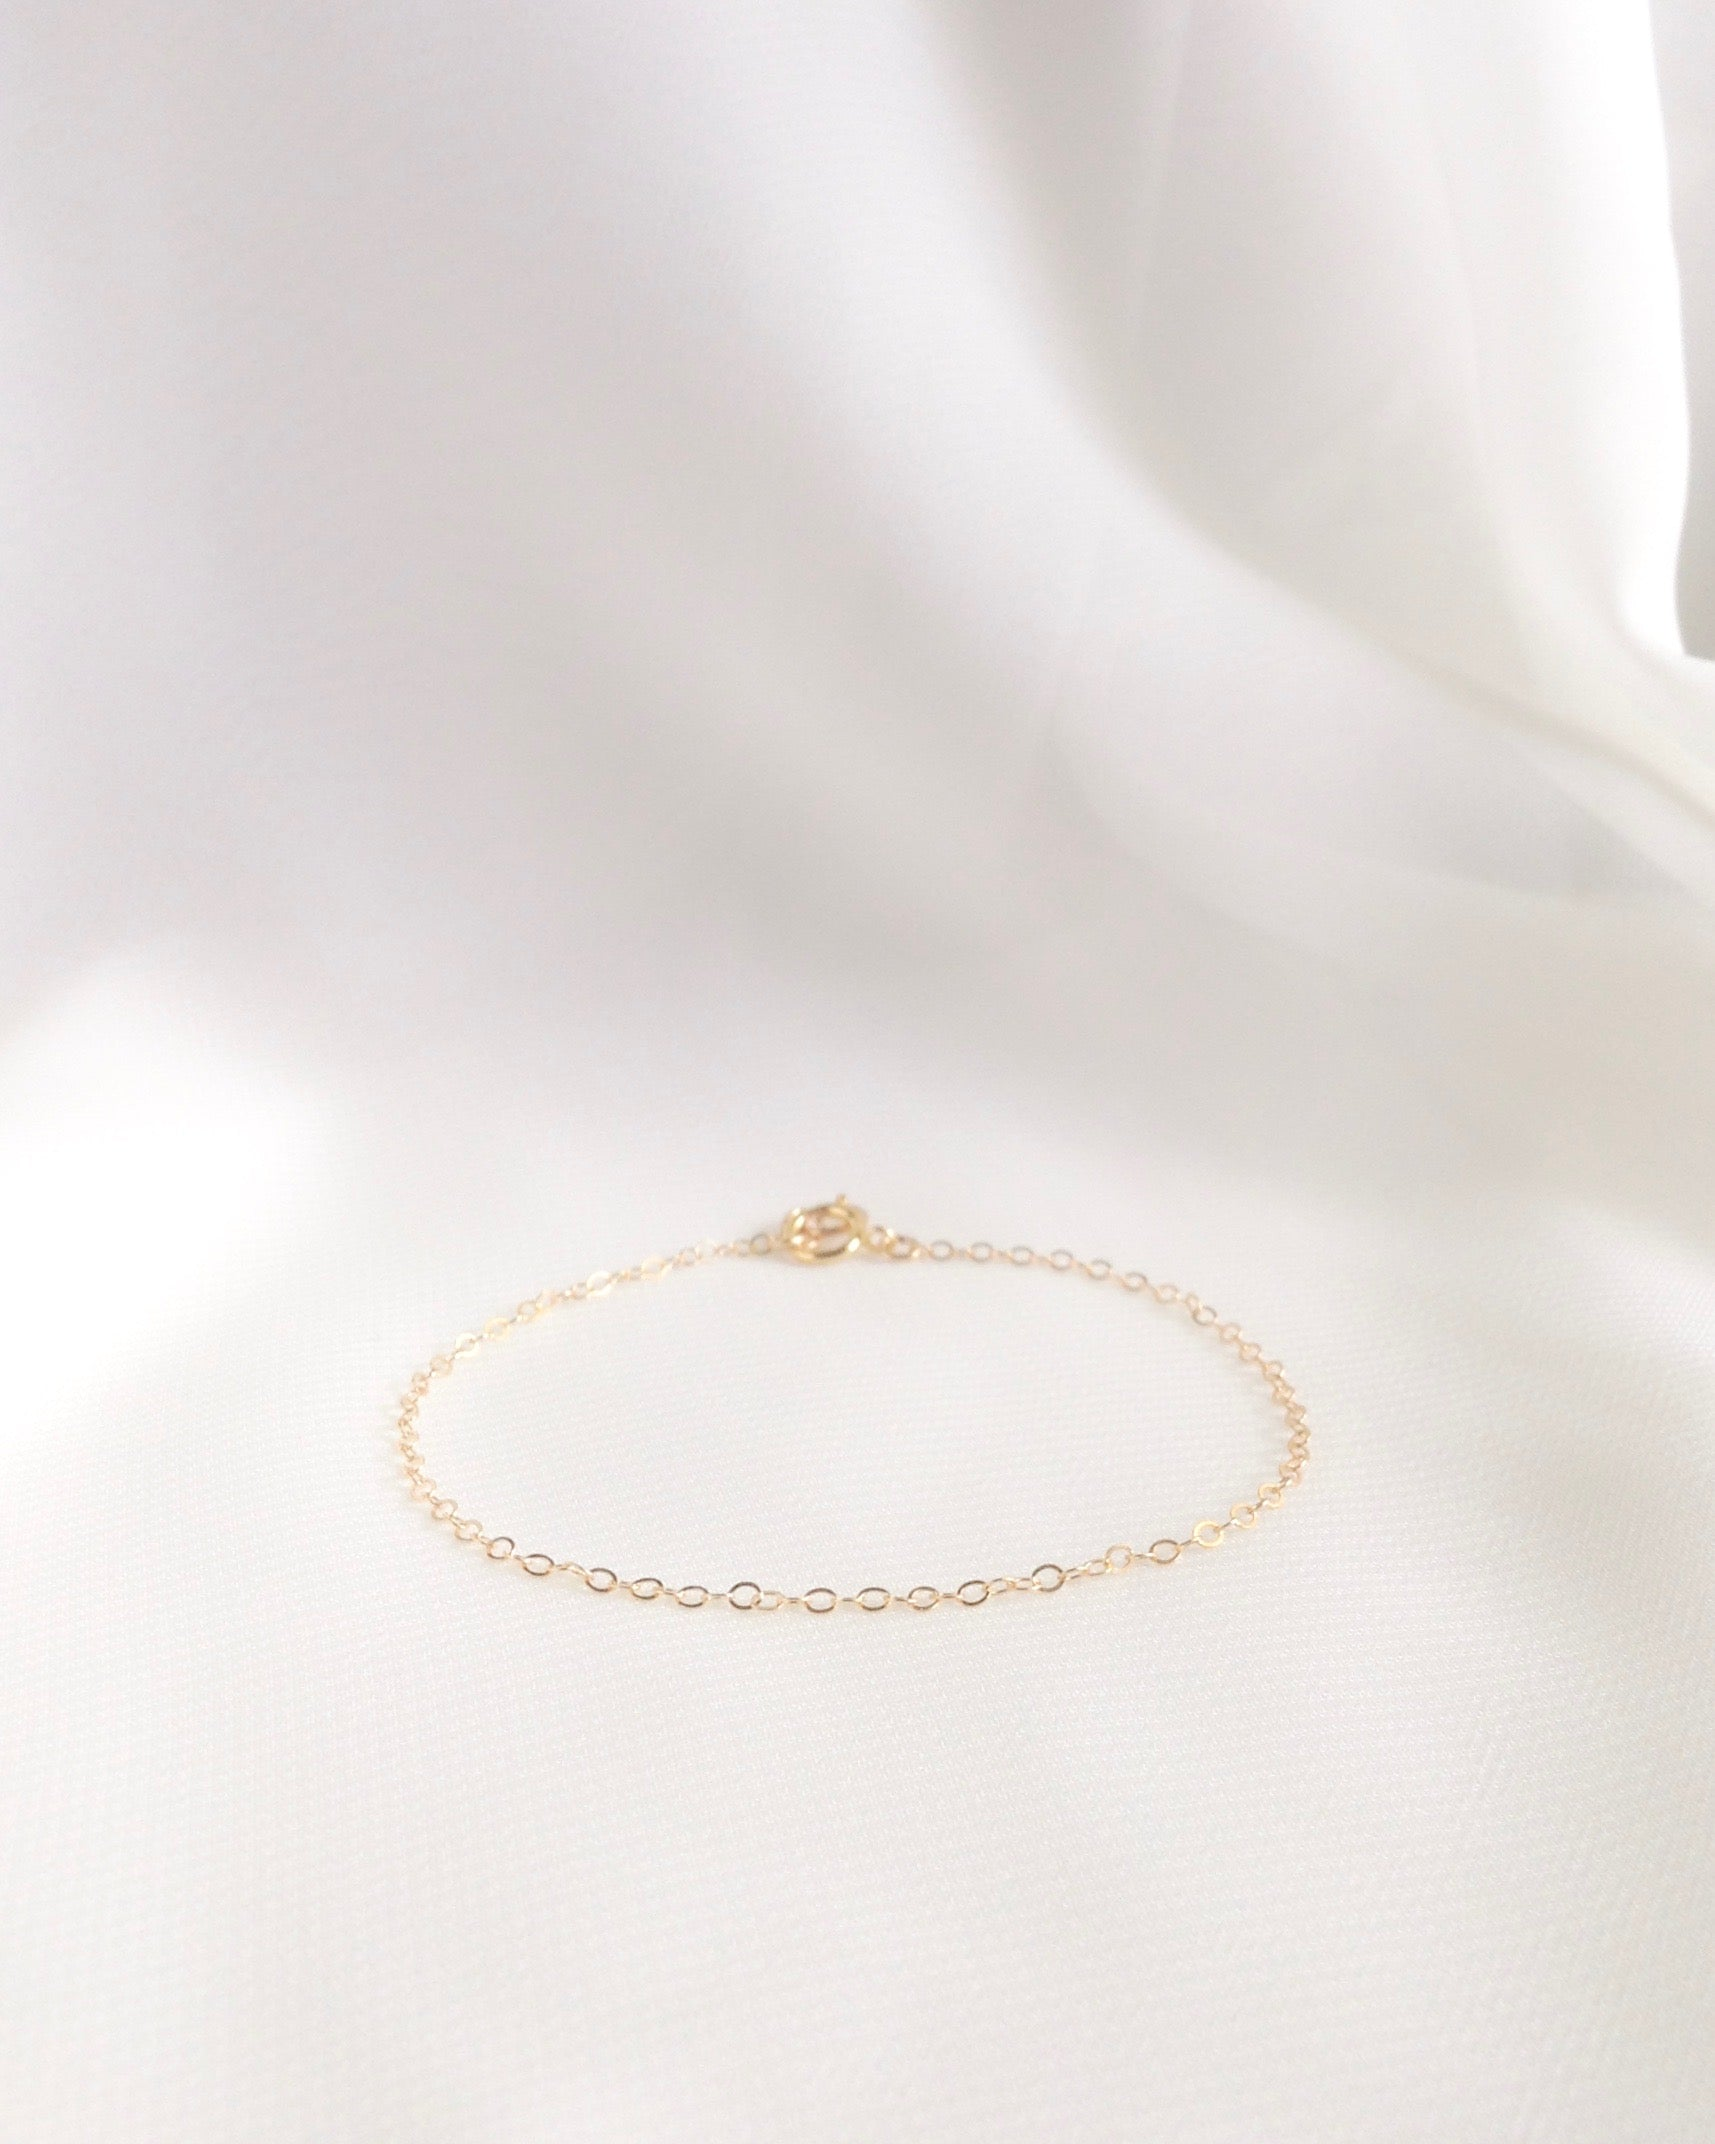 Minimalist Everyday Bracelet in Gold Filled or Sterling Silver | IB Jewelry